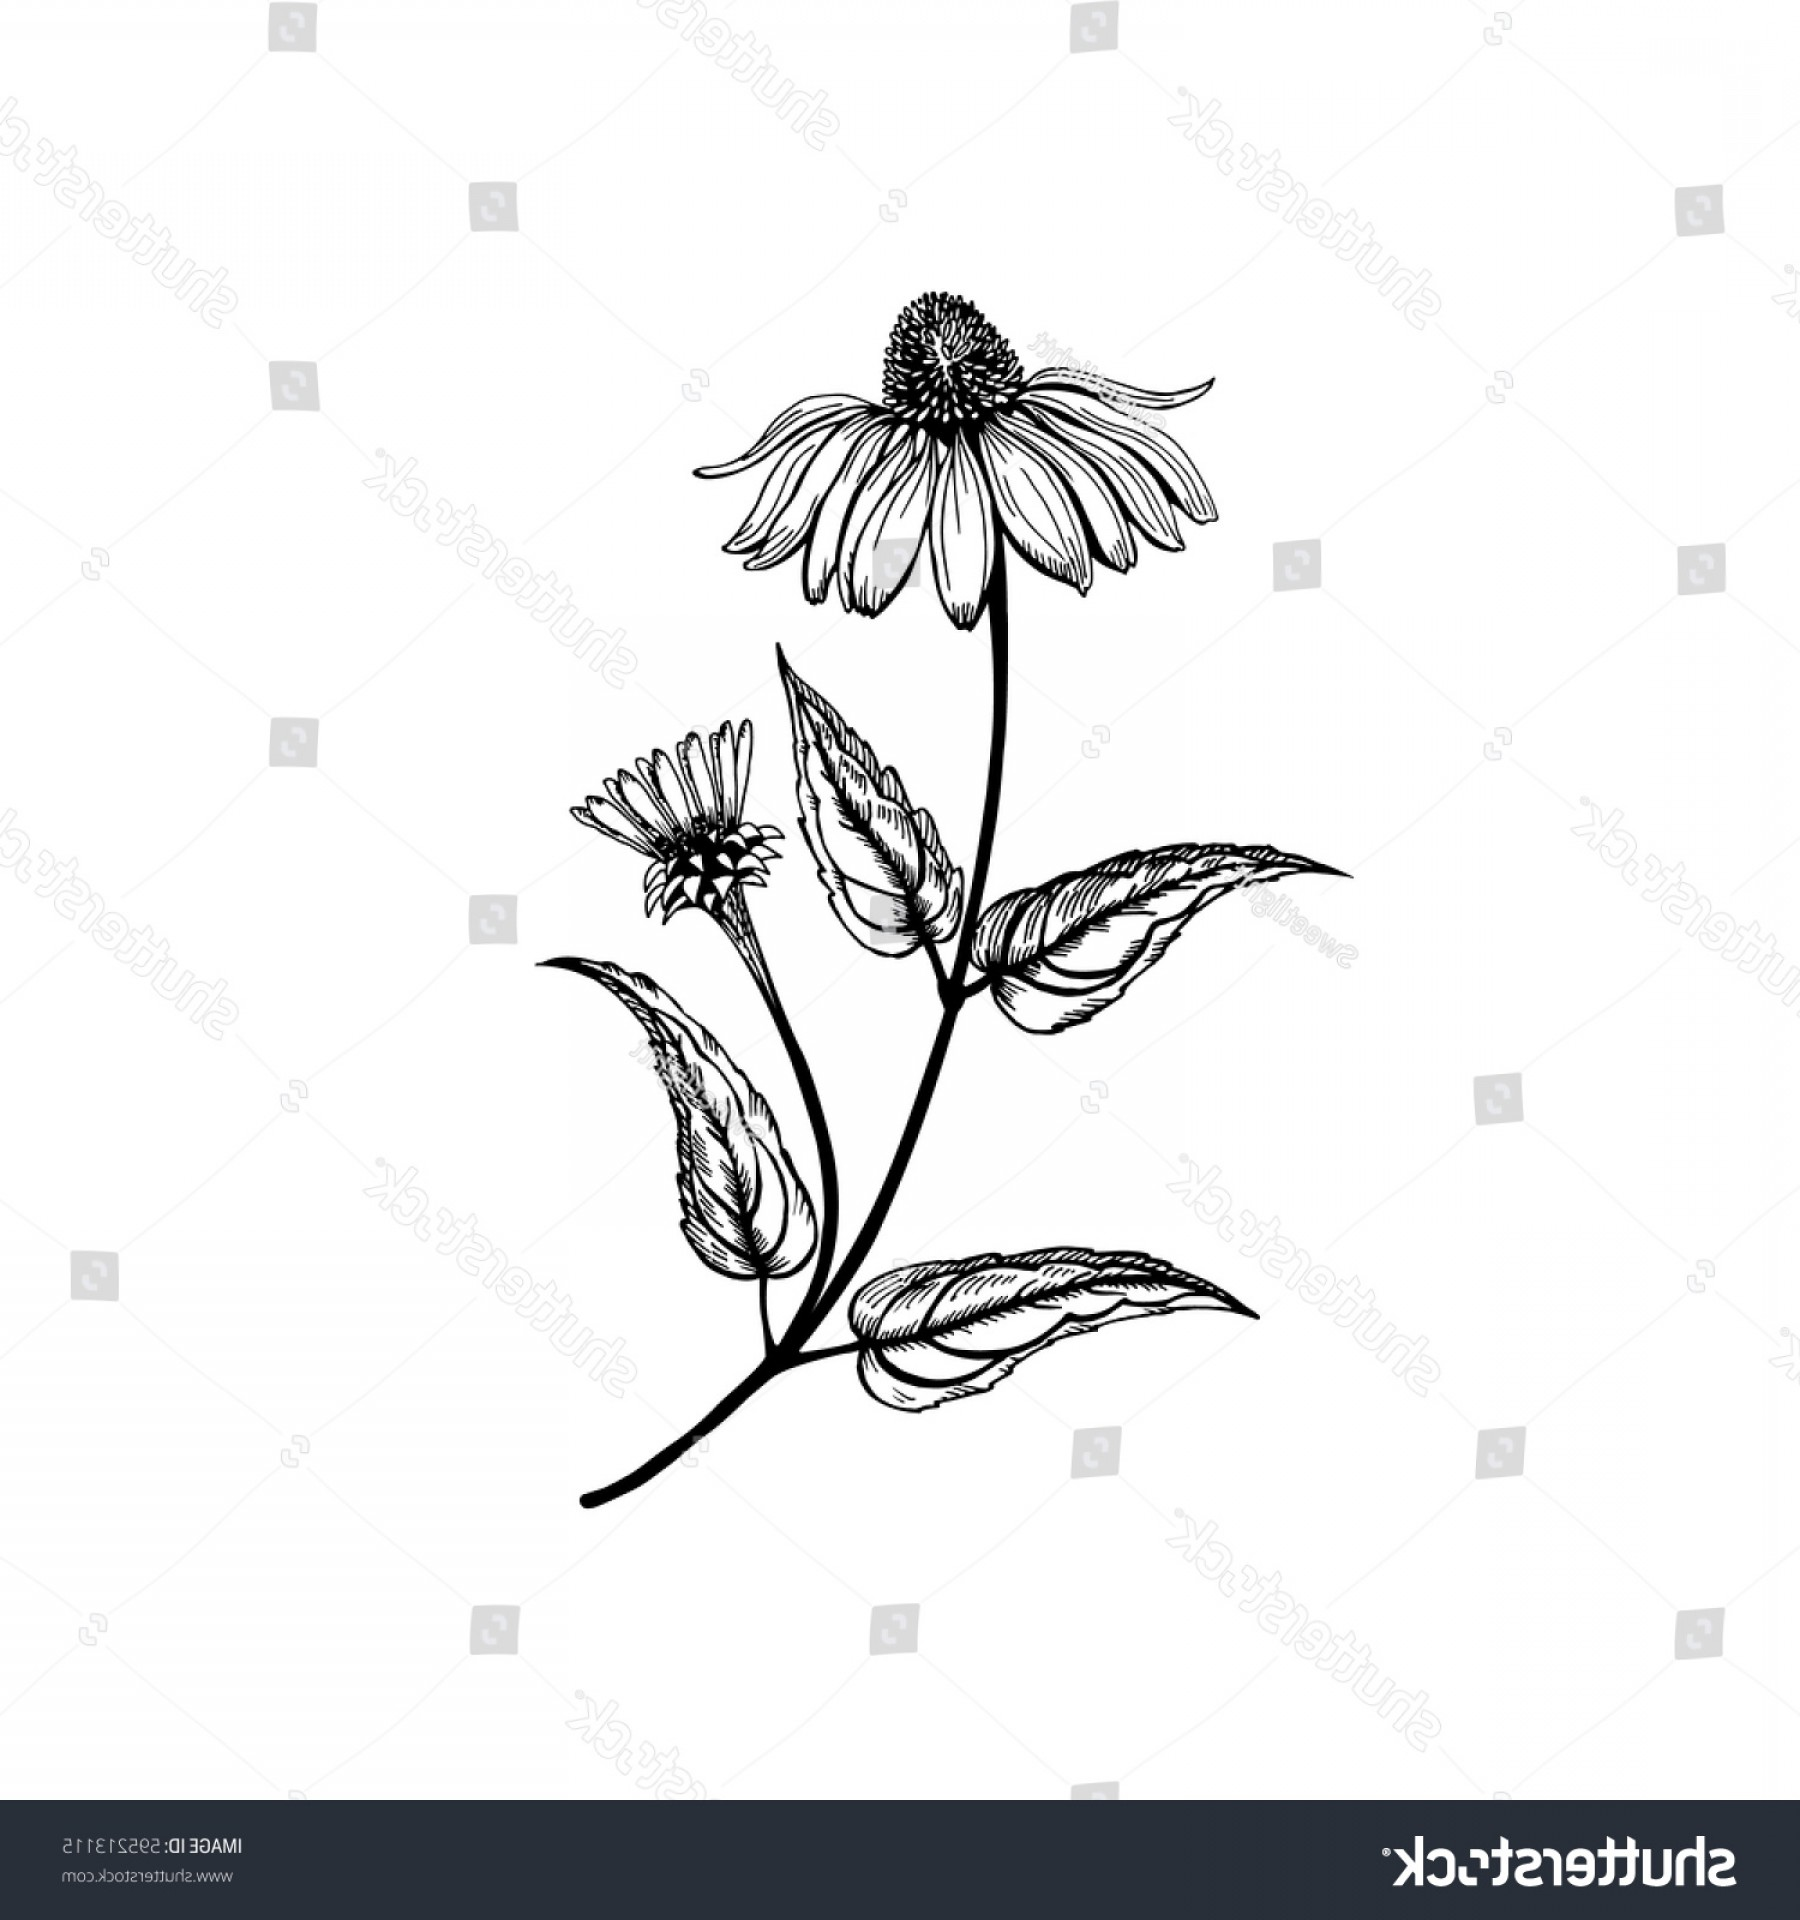 Wildflowers Outline Vector: Echinacea Vector Wildflowers Collection Outline Style